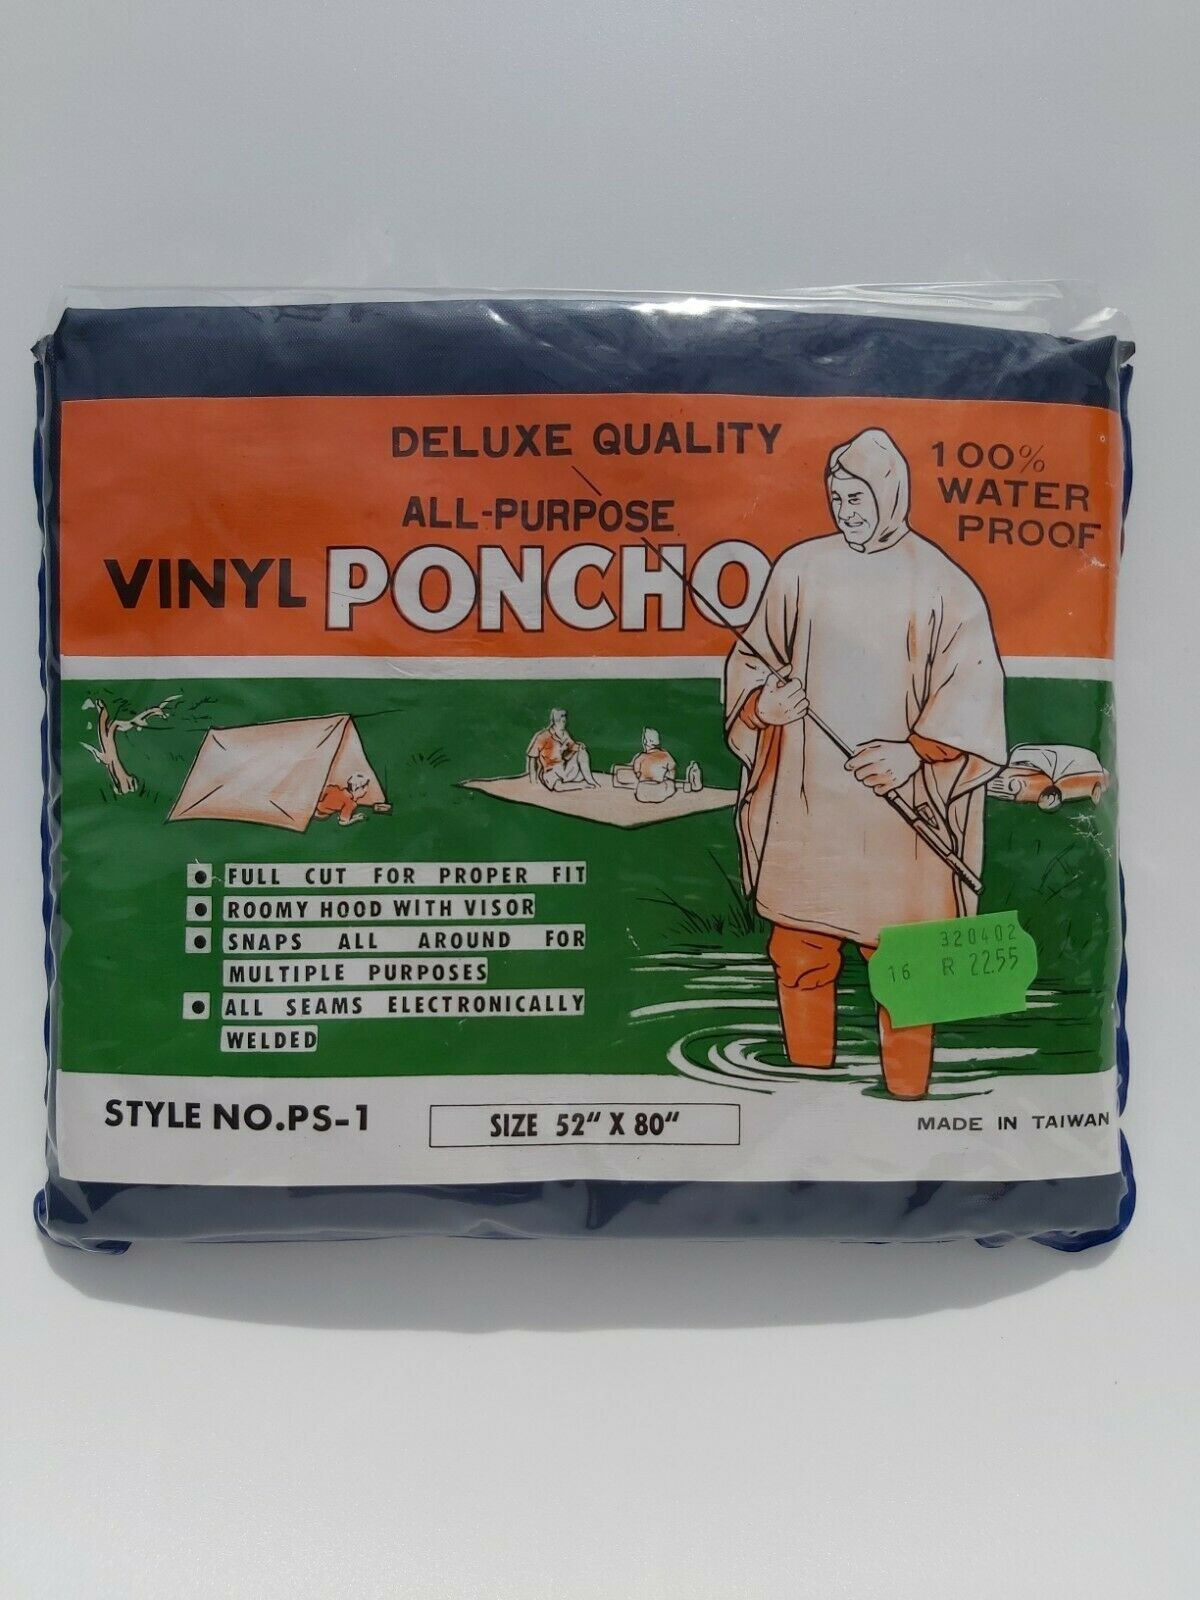 Deluxe Quality All-Purpose Vinyl Poncho - Blue - Unused in Original Packaging